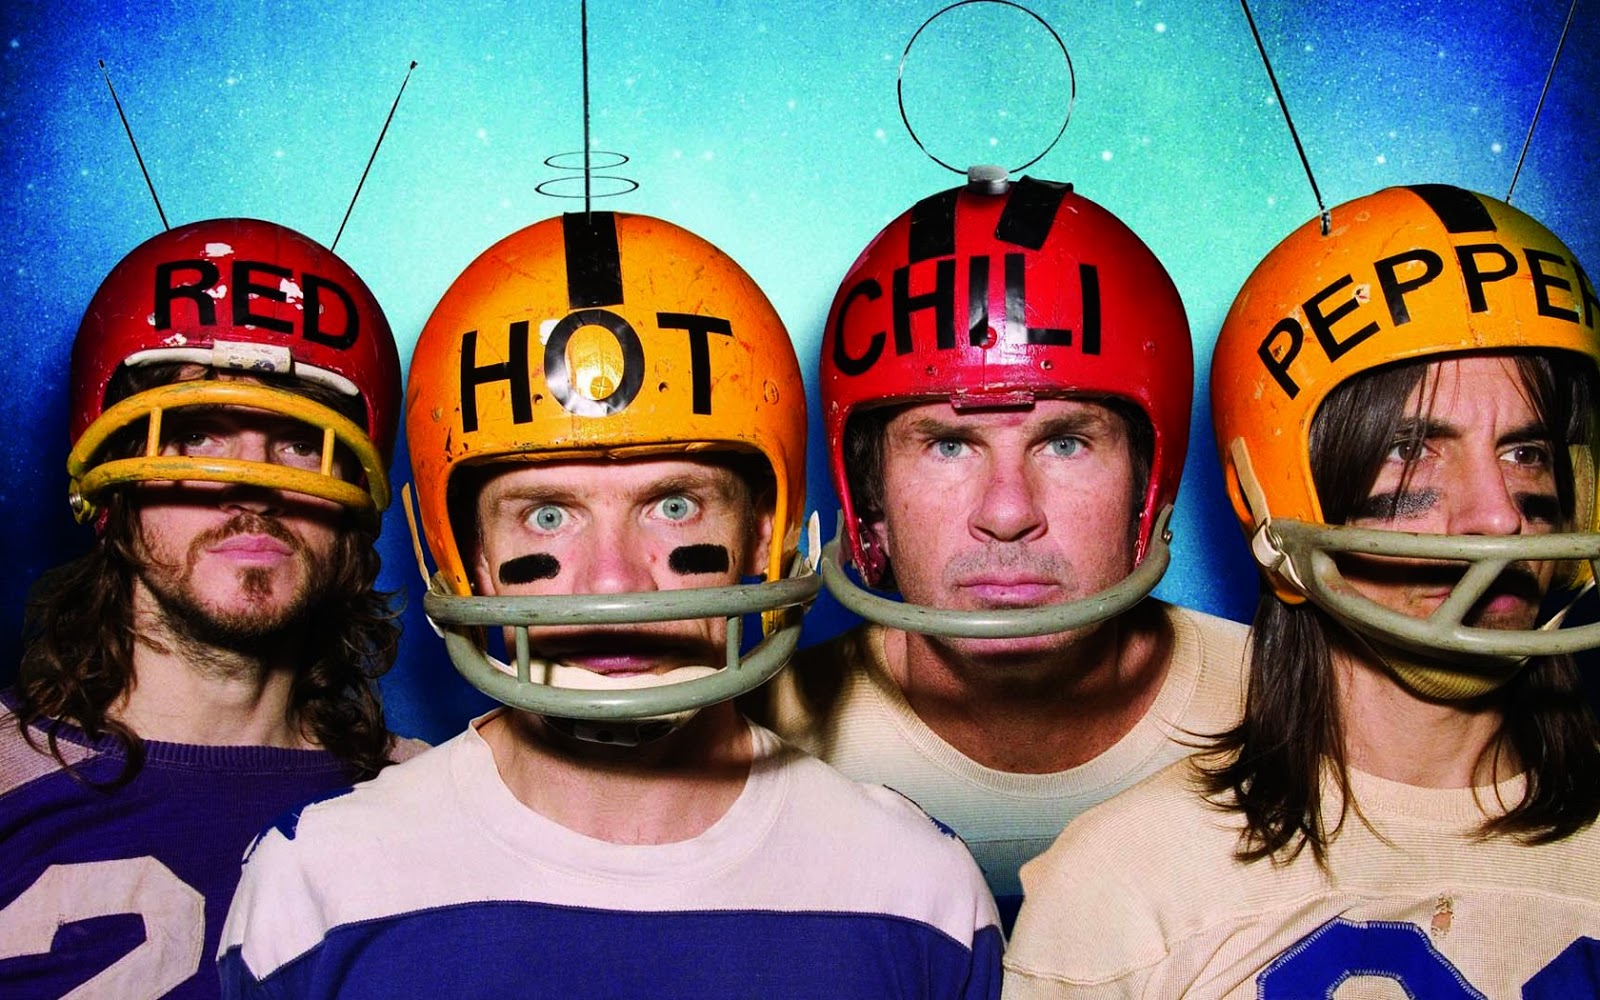 Red-Hot-Chili-Peppers-with-Nfl-Uniform-and-Helmet-HD-Wallpaper_Vvallpaper.Net.jpg